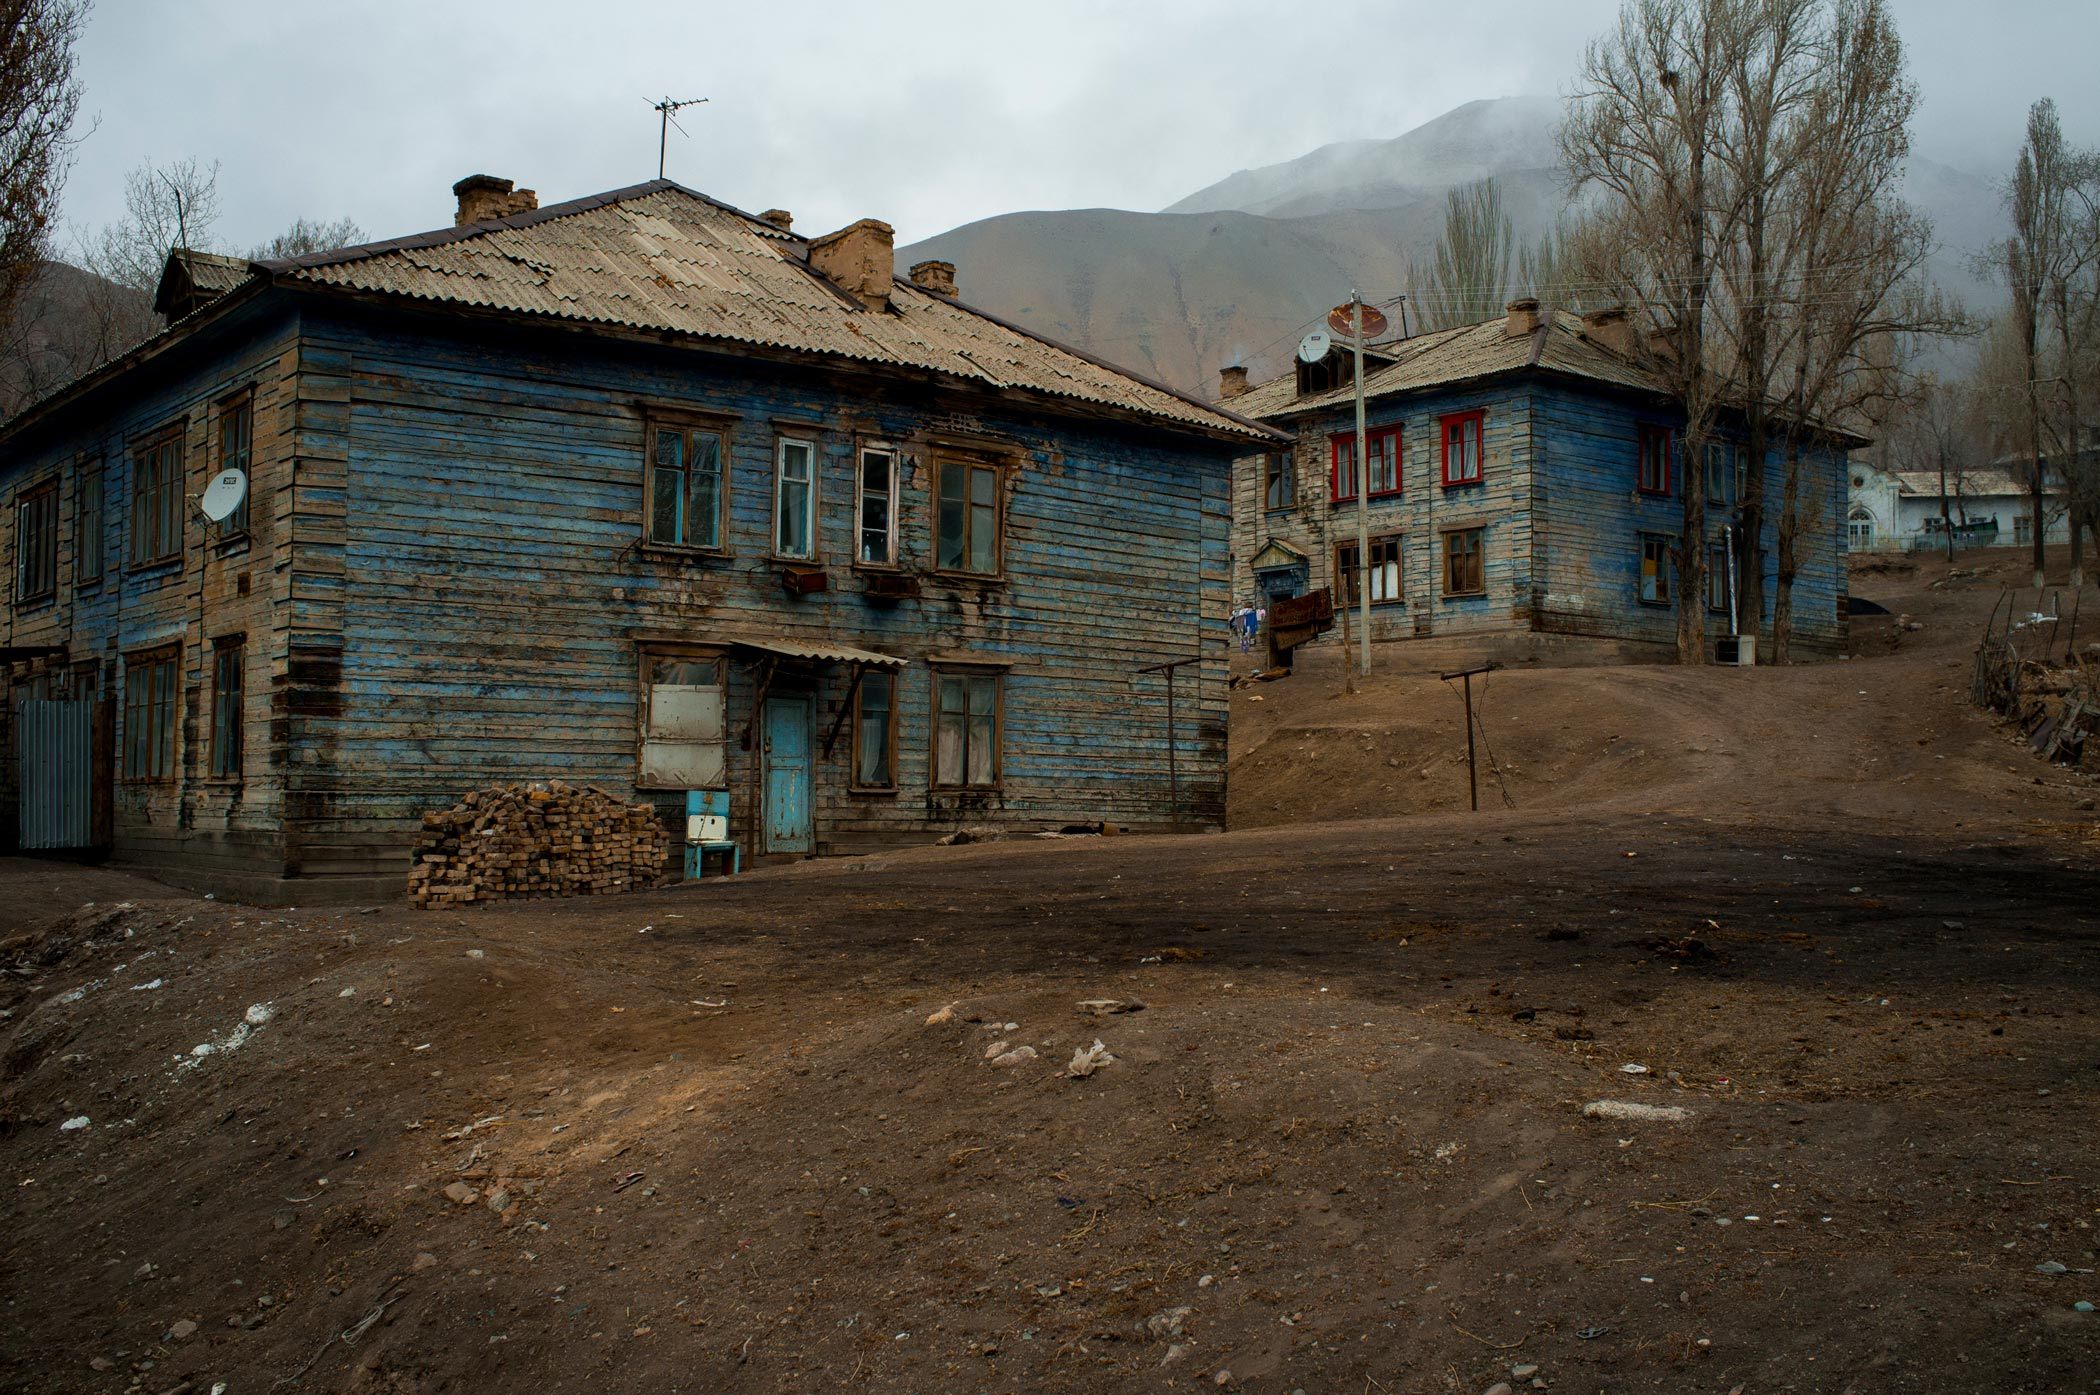 Blue wooden houses in Min Kush, Kyrgyzstan